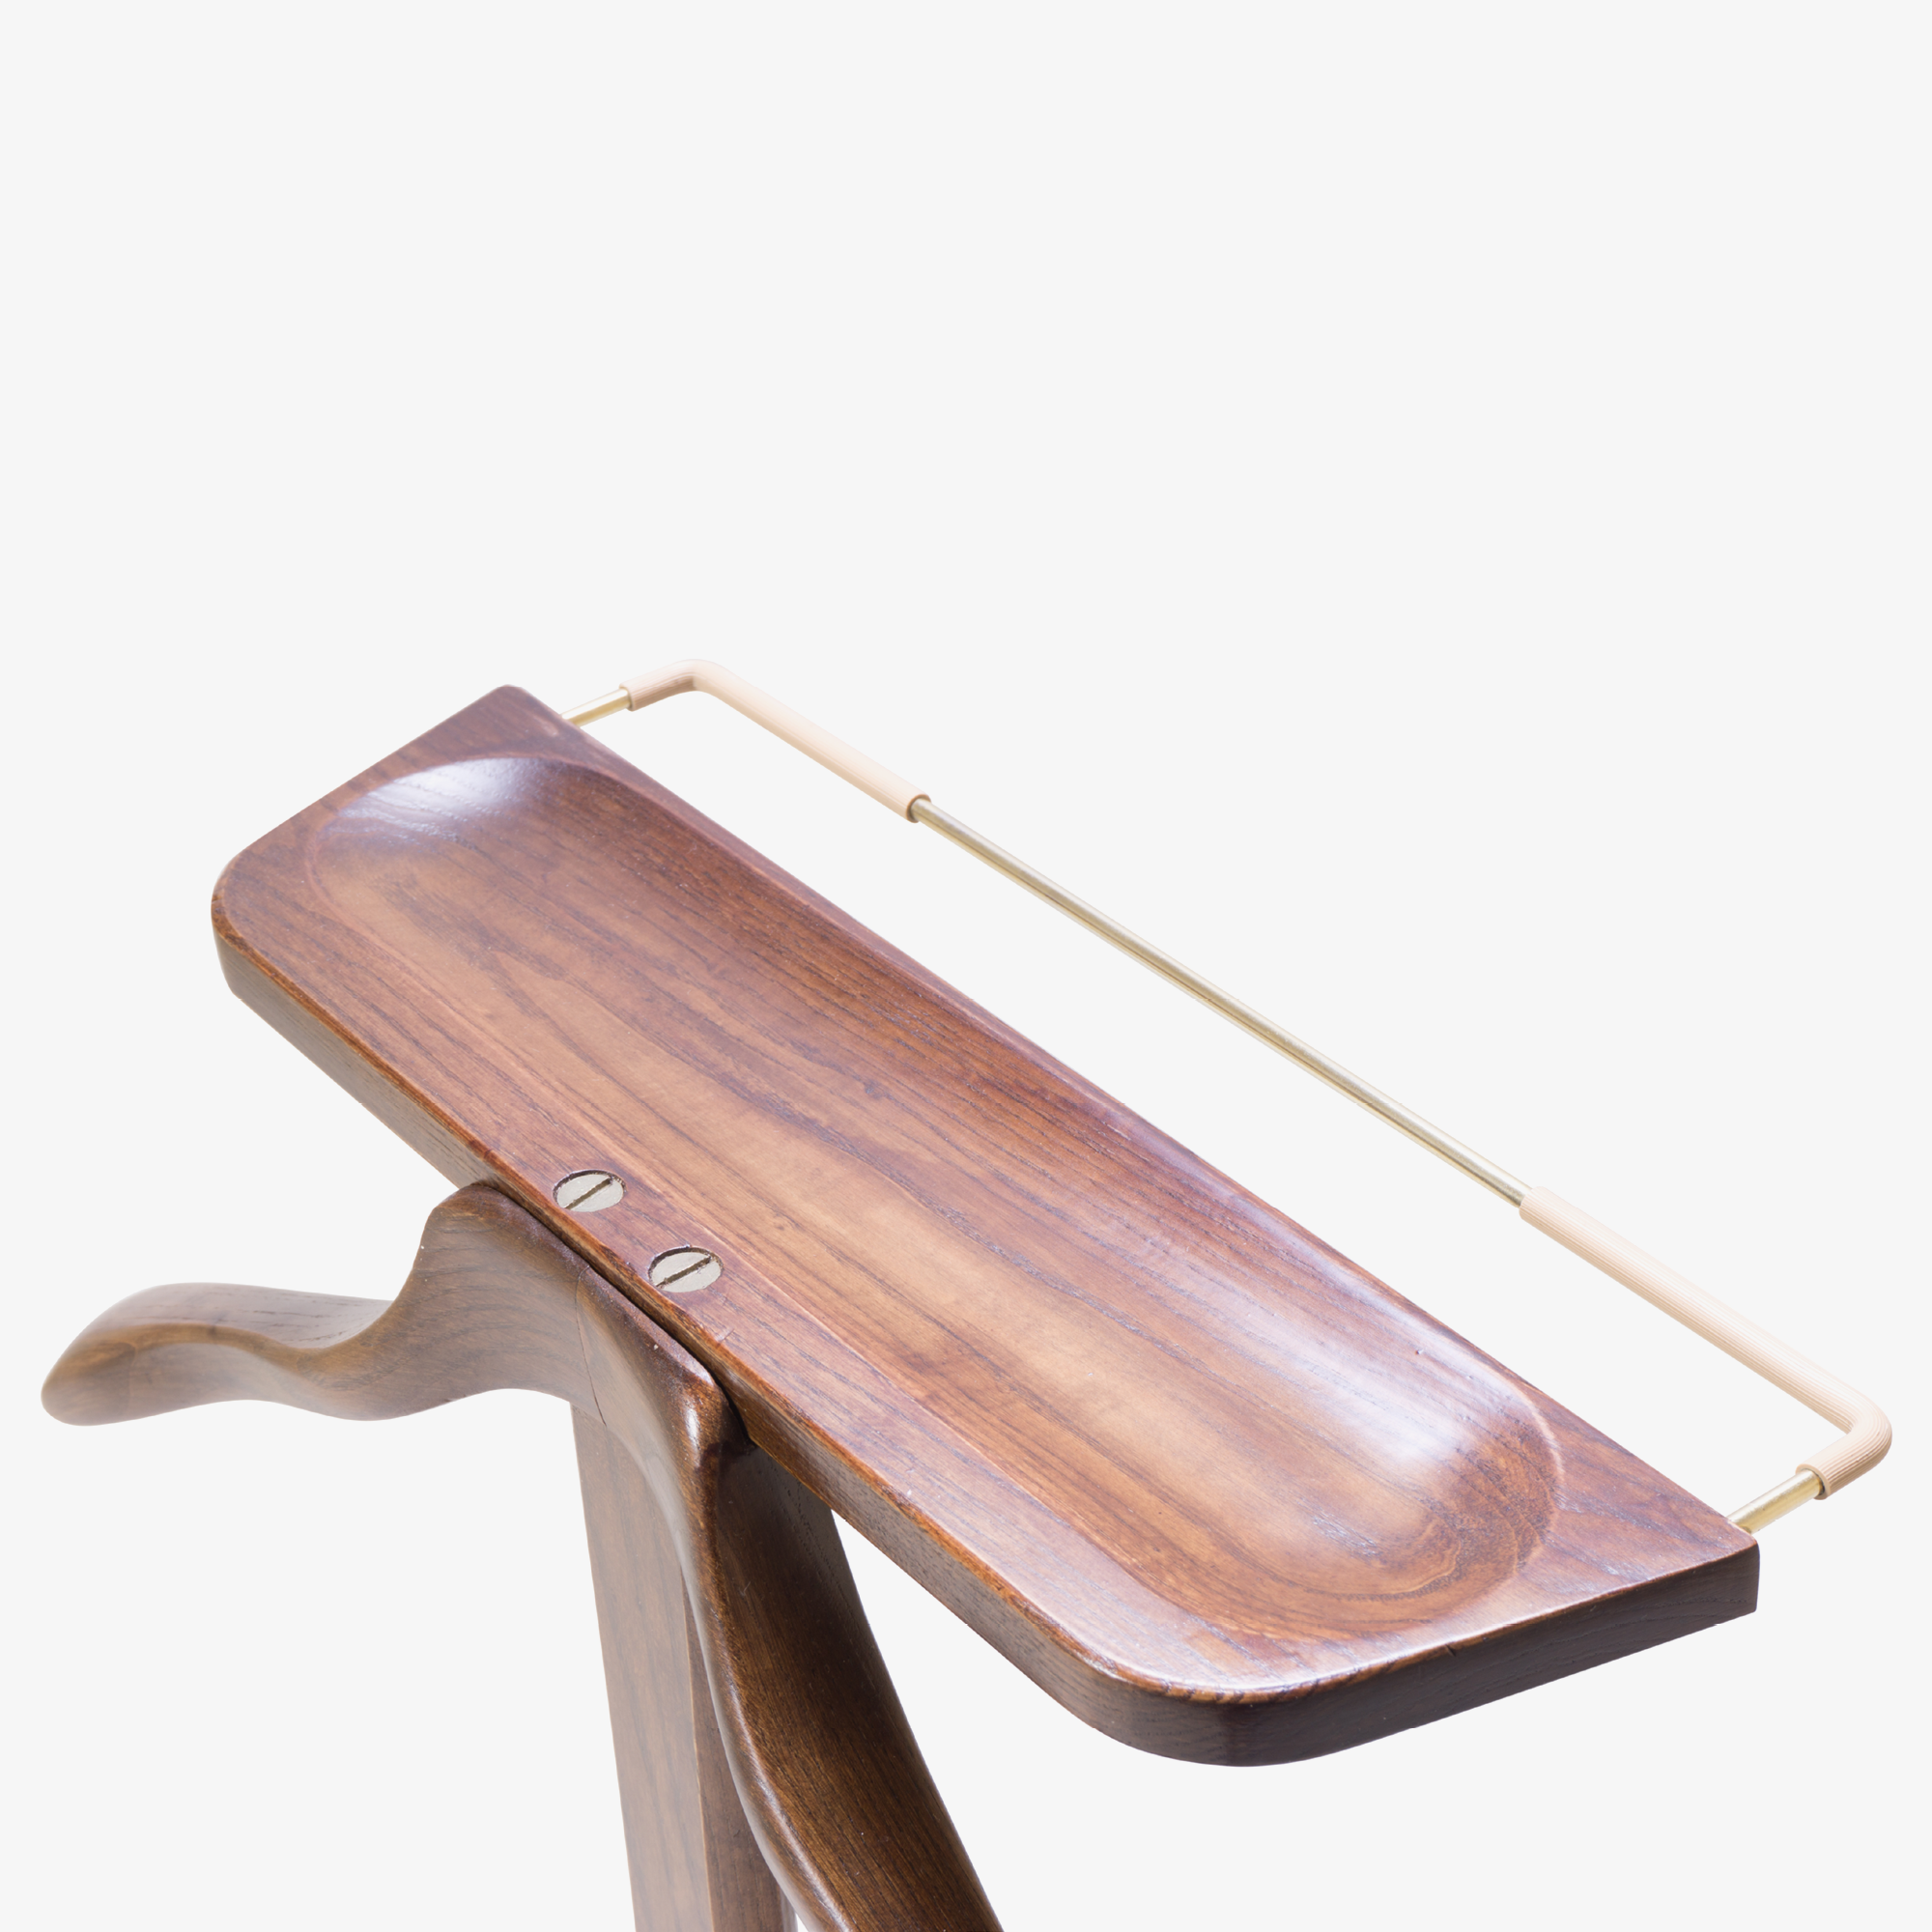 Italian Valet Chair4.png